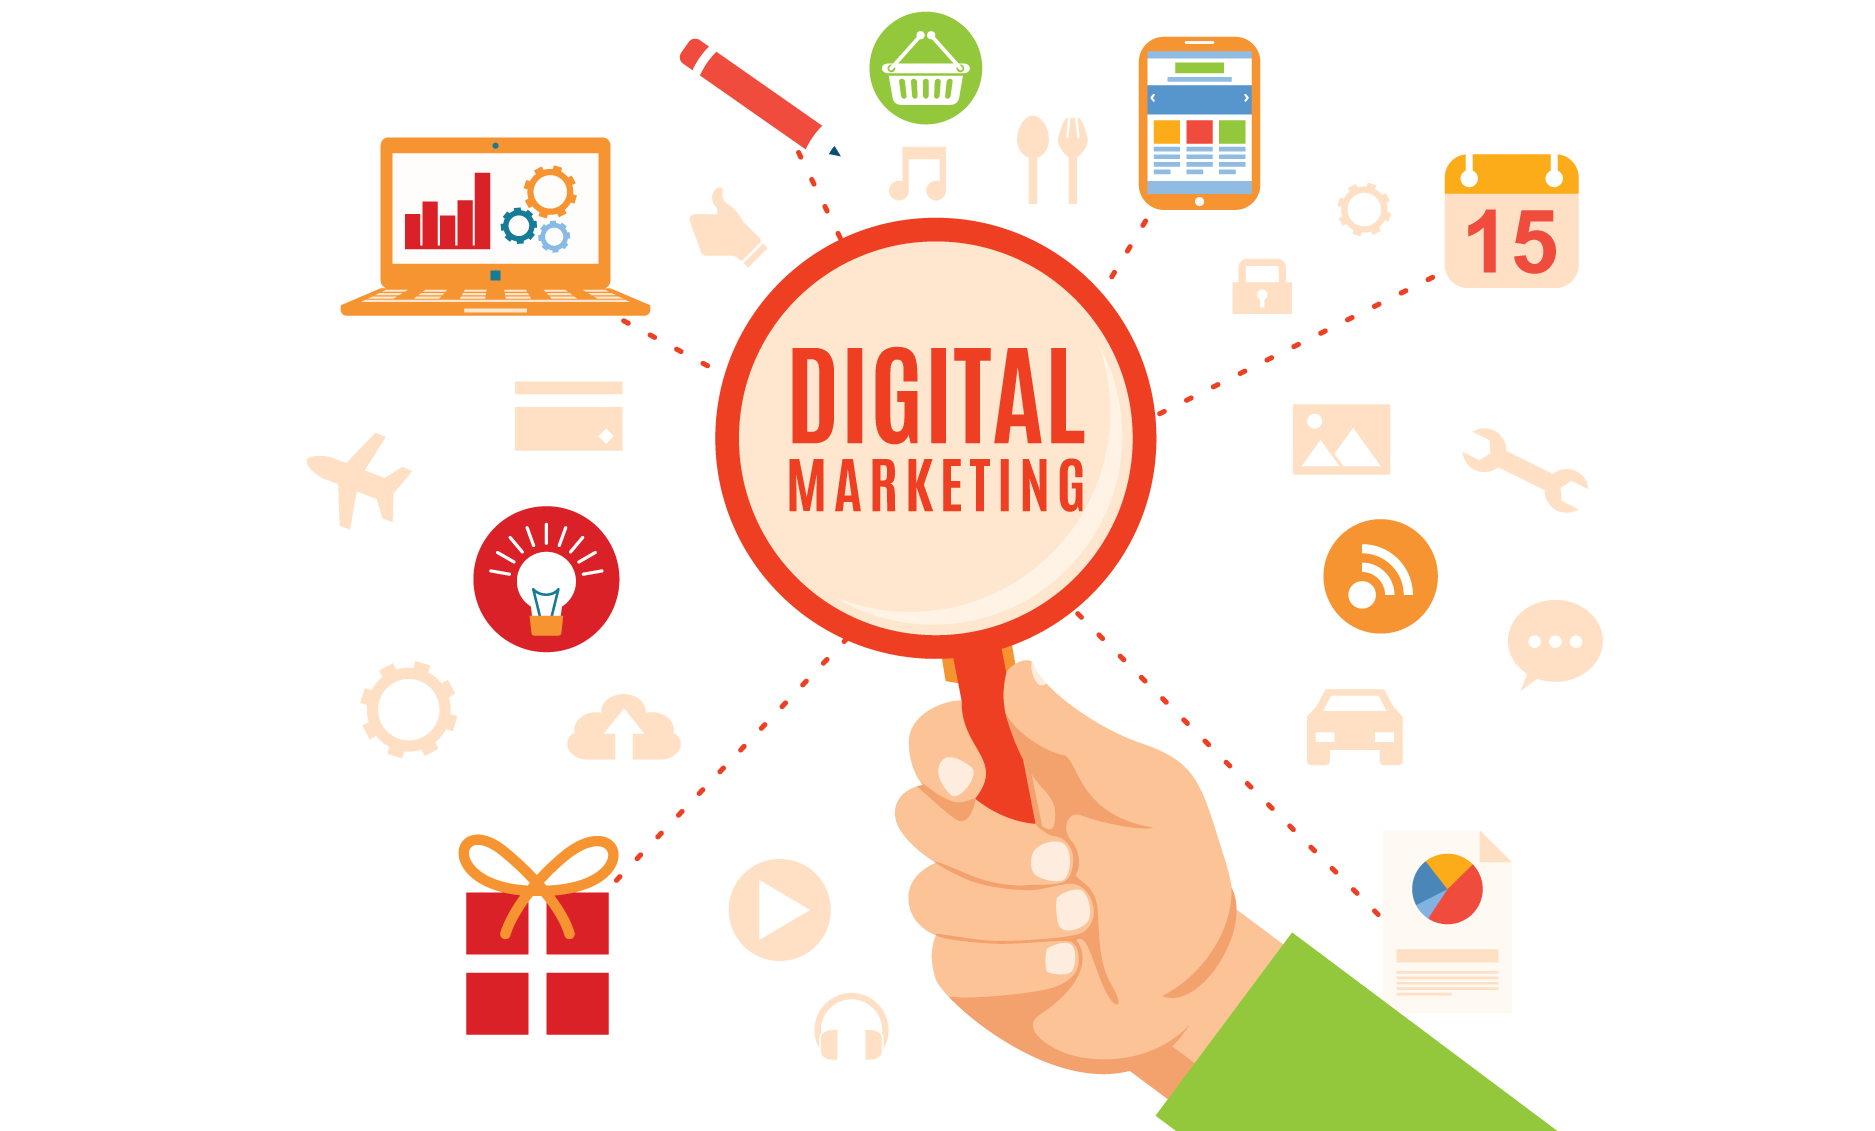 Free Digital Marketing, SEO, Social Media Marketing Course